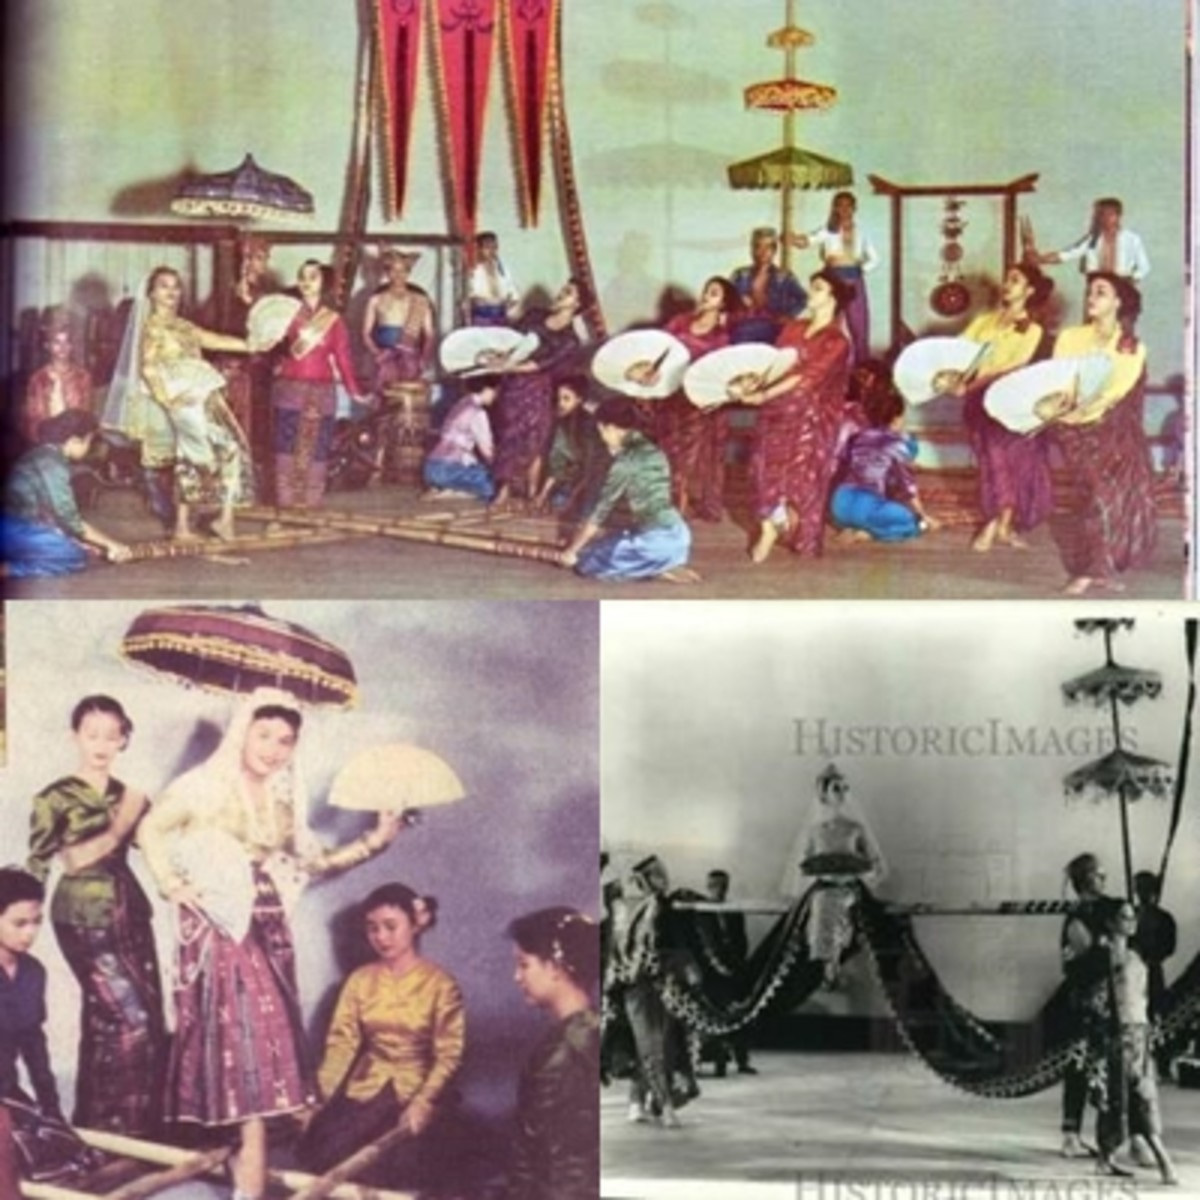 Bayanihan Singkil Evolution (from top to bottom, left to right); colorized picture in1958, their earlier version of Singkil, and black and white in 1977.